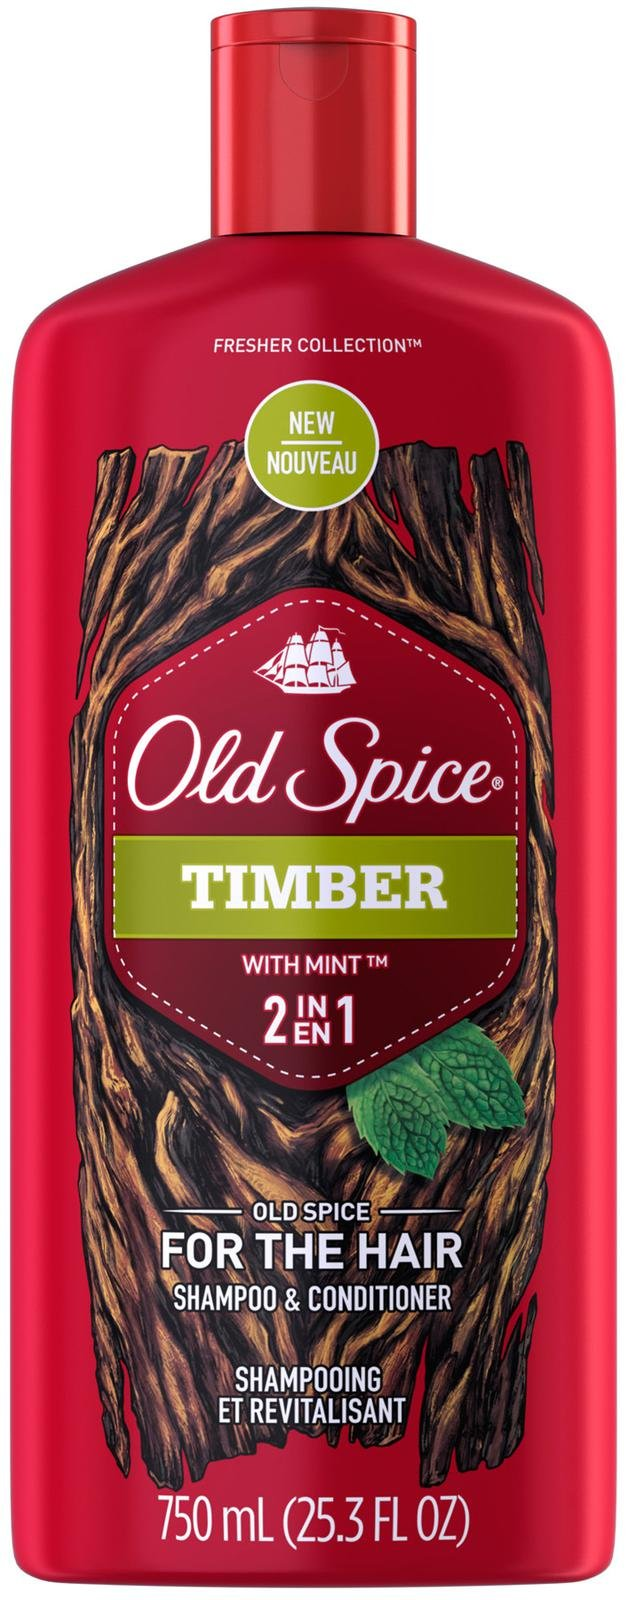 Old Spice timber with mint